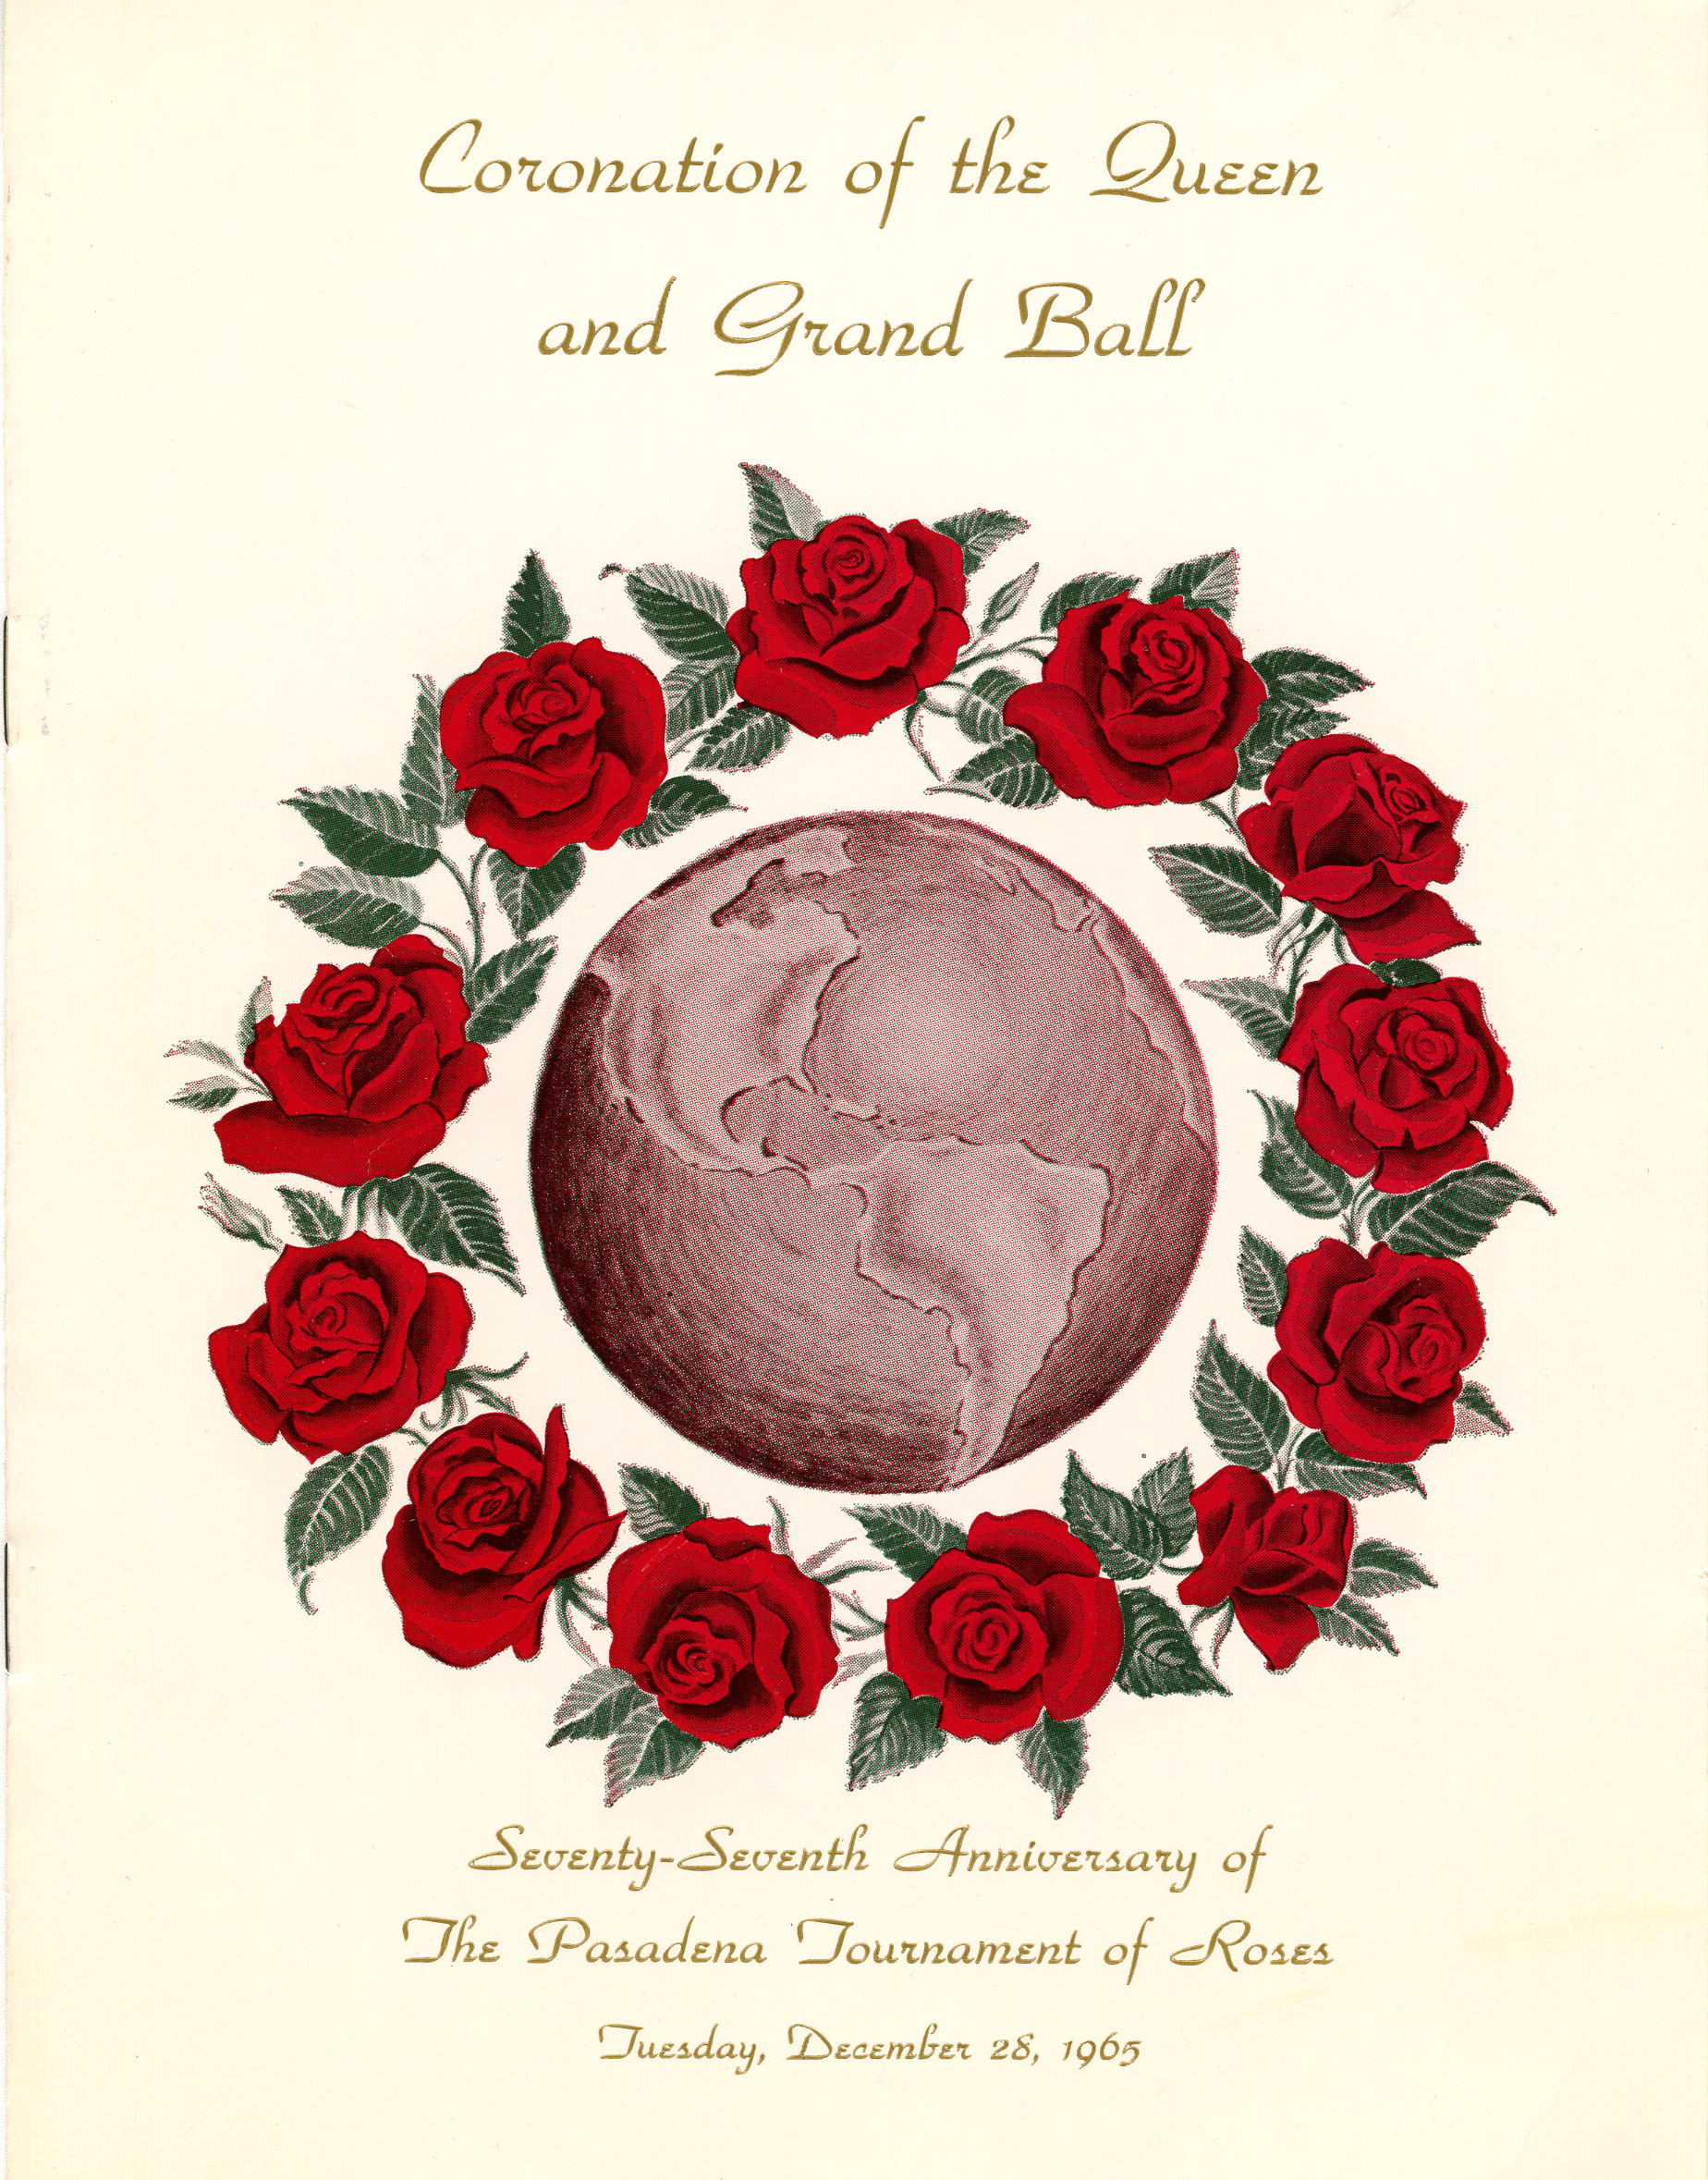 Rose Bowl Grand Ball program, 1965